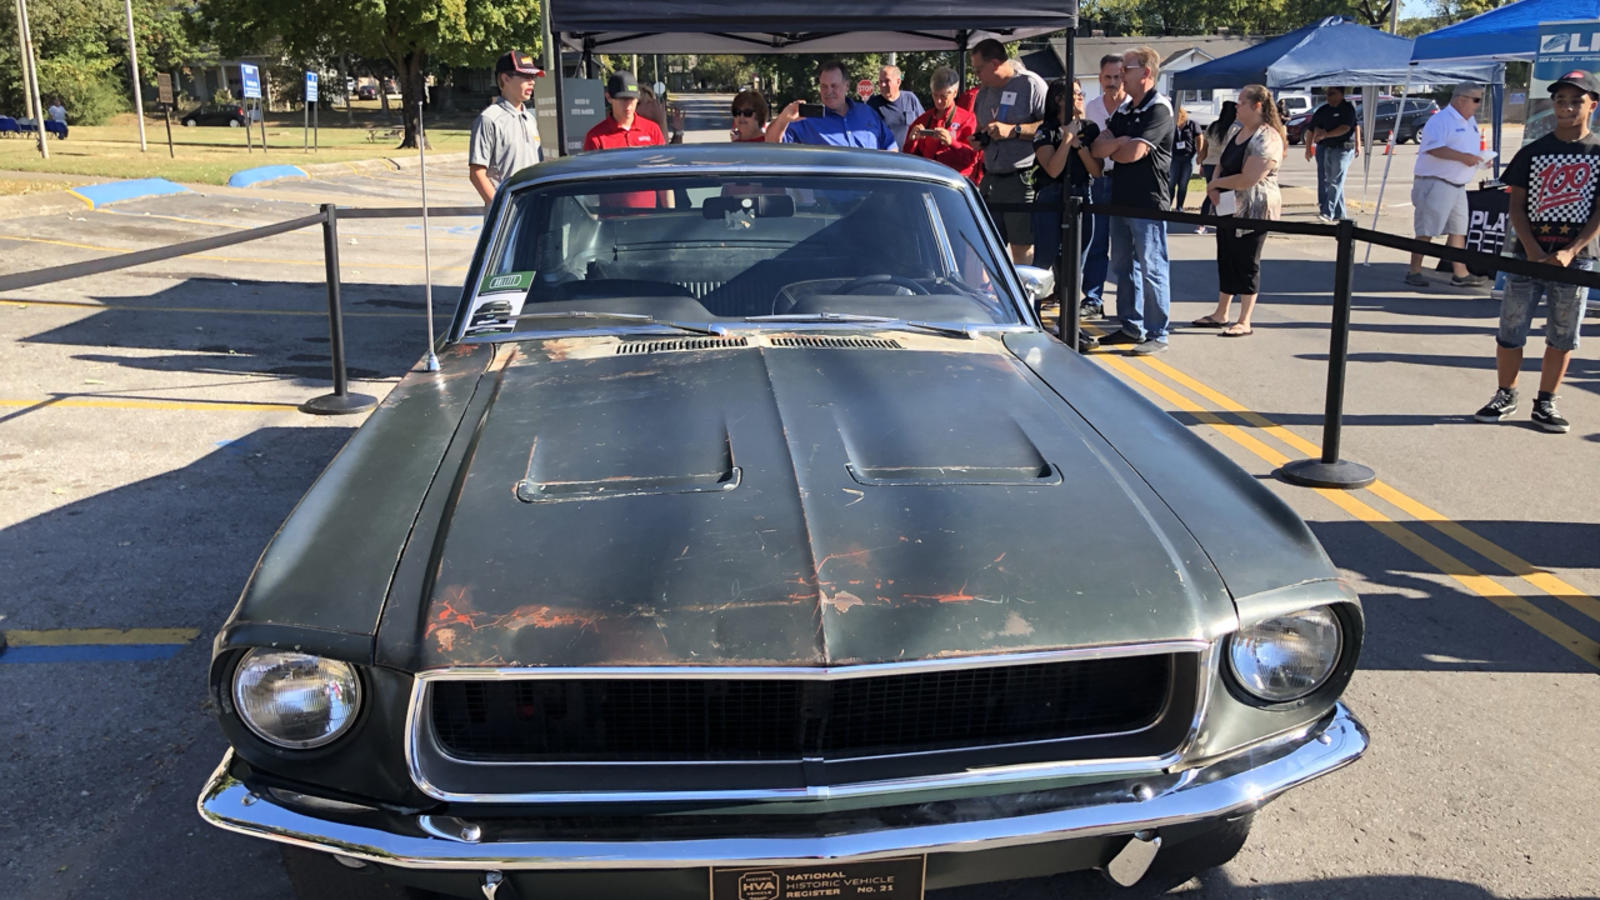 This is the actual 1968 Mustang Driven by Steve McQueen in the movie Bullitt